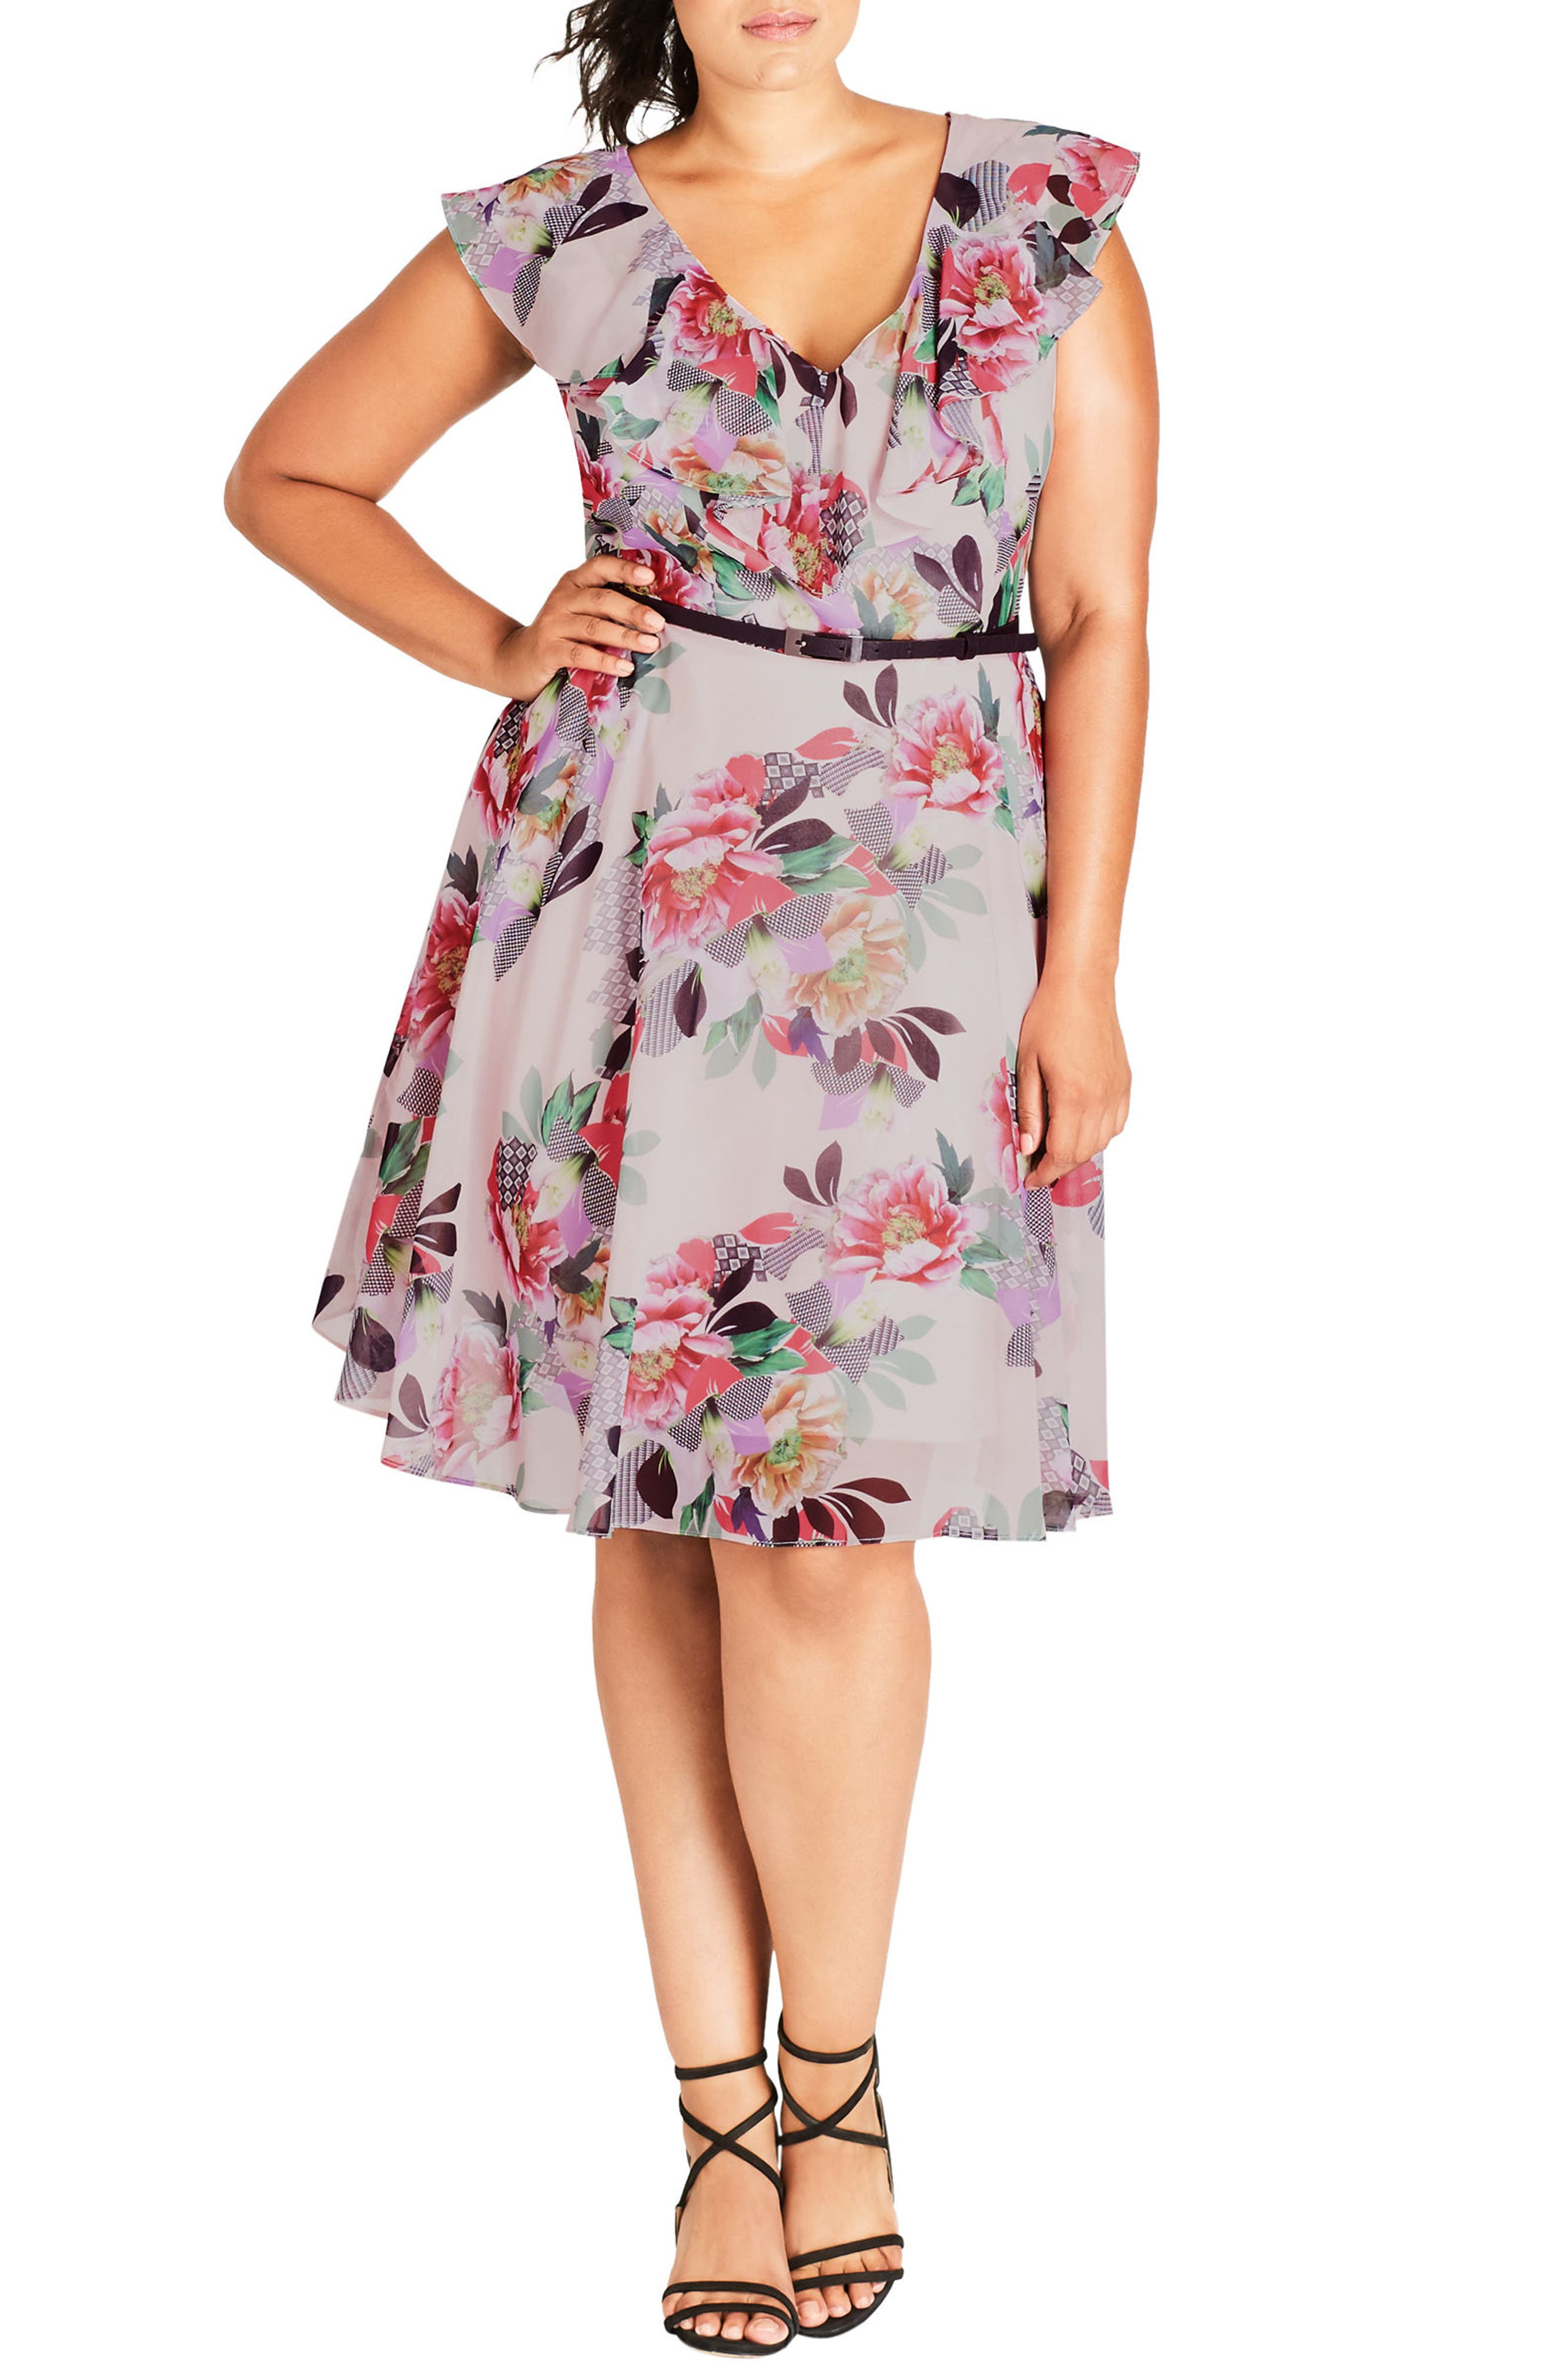 Alternate Image 1 Selected - City Chic Romance Ruffle Floral Fit & Flare Dress (Plus Size)